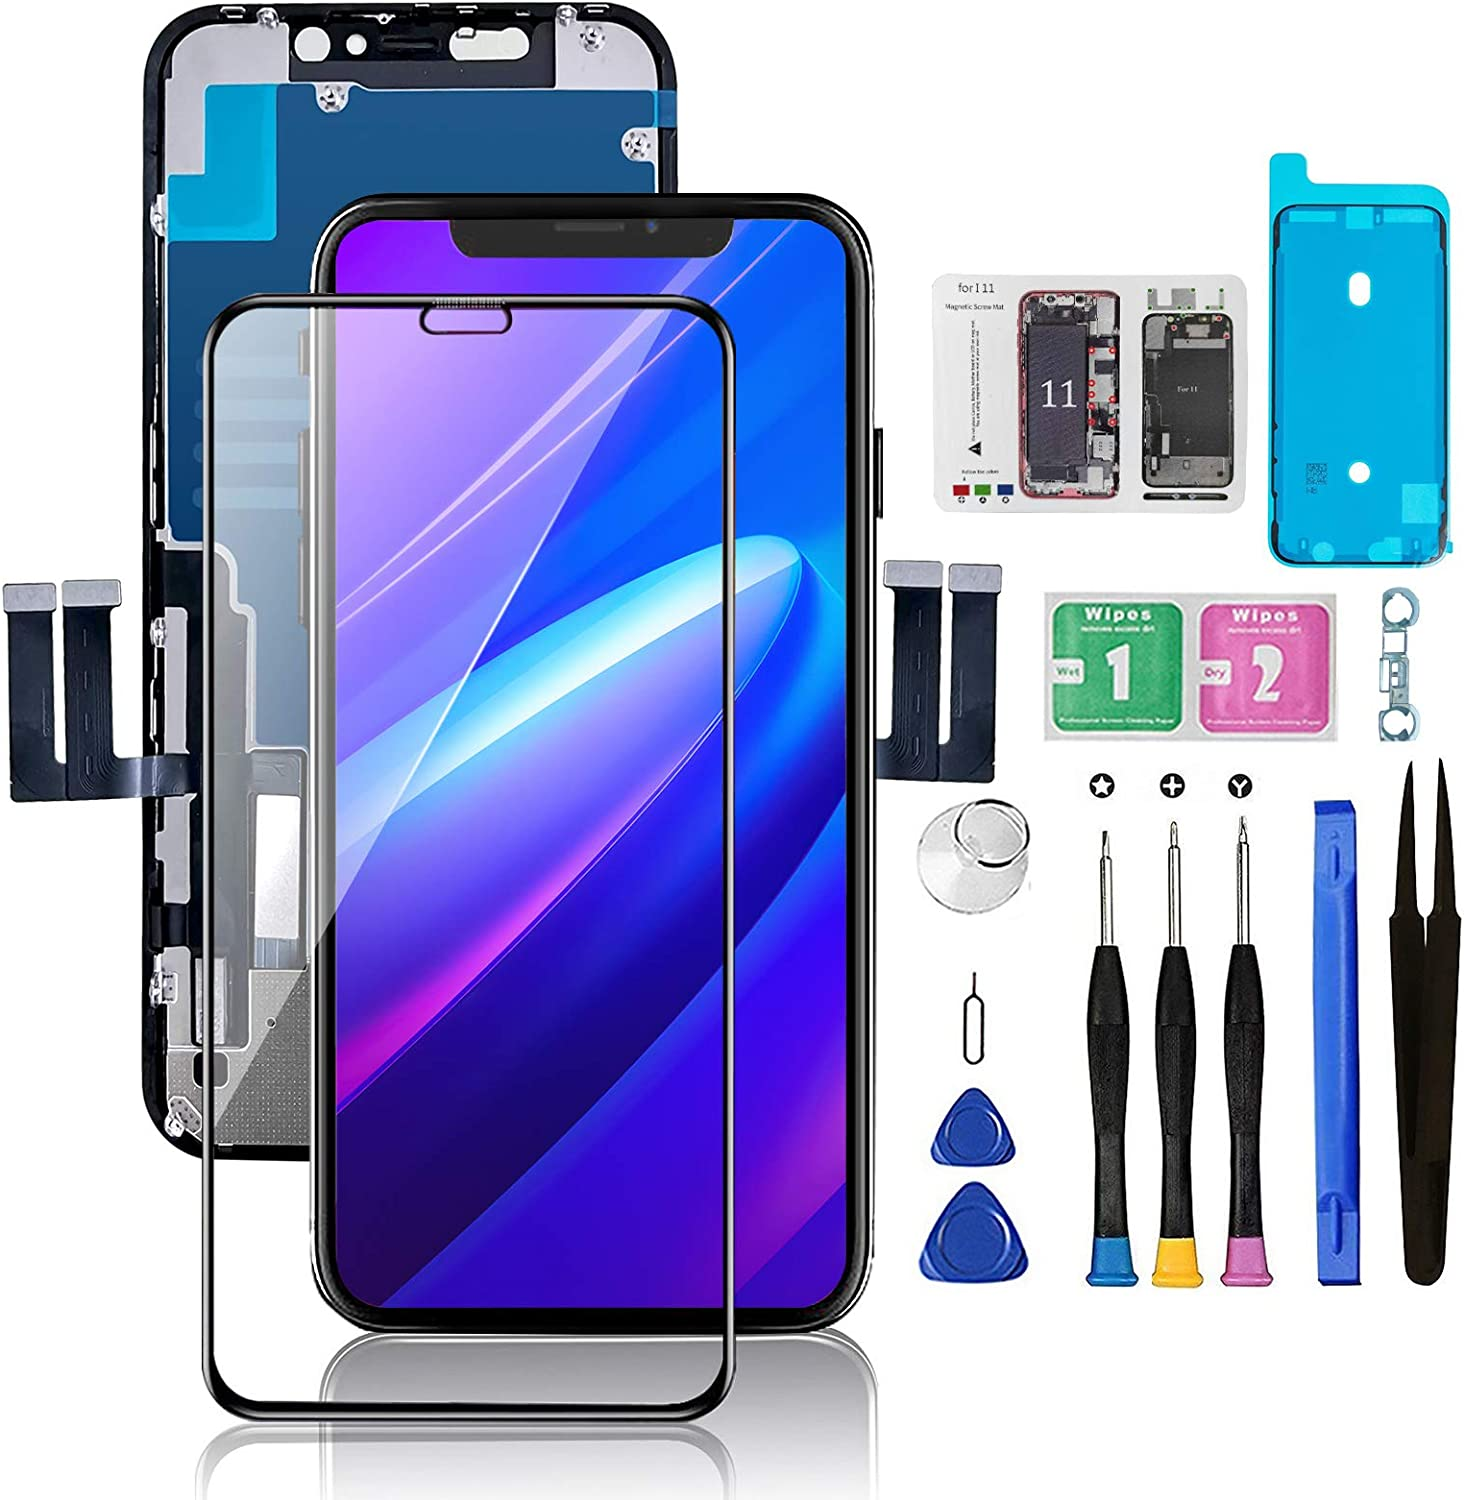 """for iPhone 11 Screen Replacement 6.1"""", Bsz4uov 3D Touch Screen LCD Display Digitizer for A2111, A2223, A2221 Cell Phone Repair Kits+ Waterproof Frame Adhesive Sticker+Screen Tempered Protector+Face ID"""